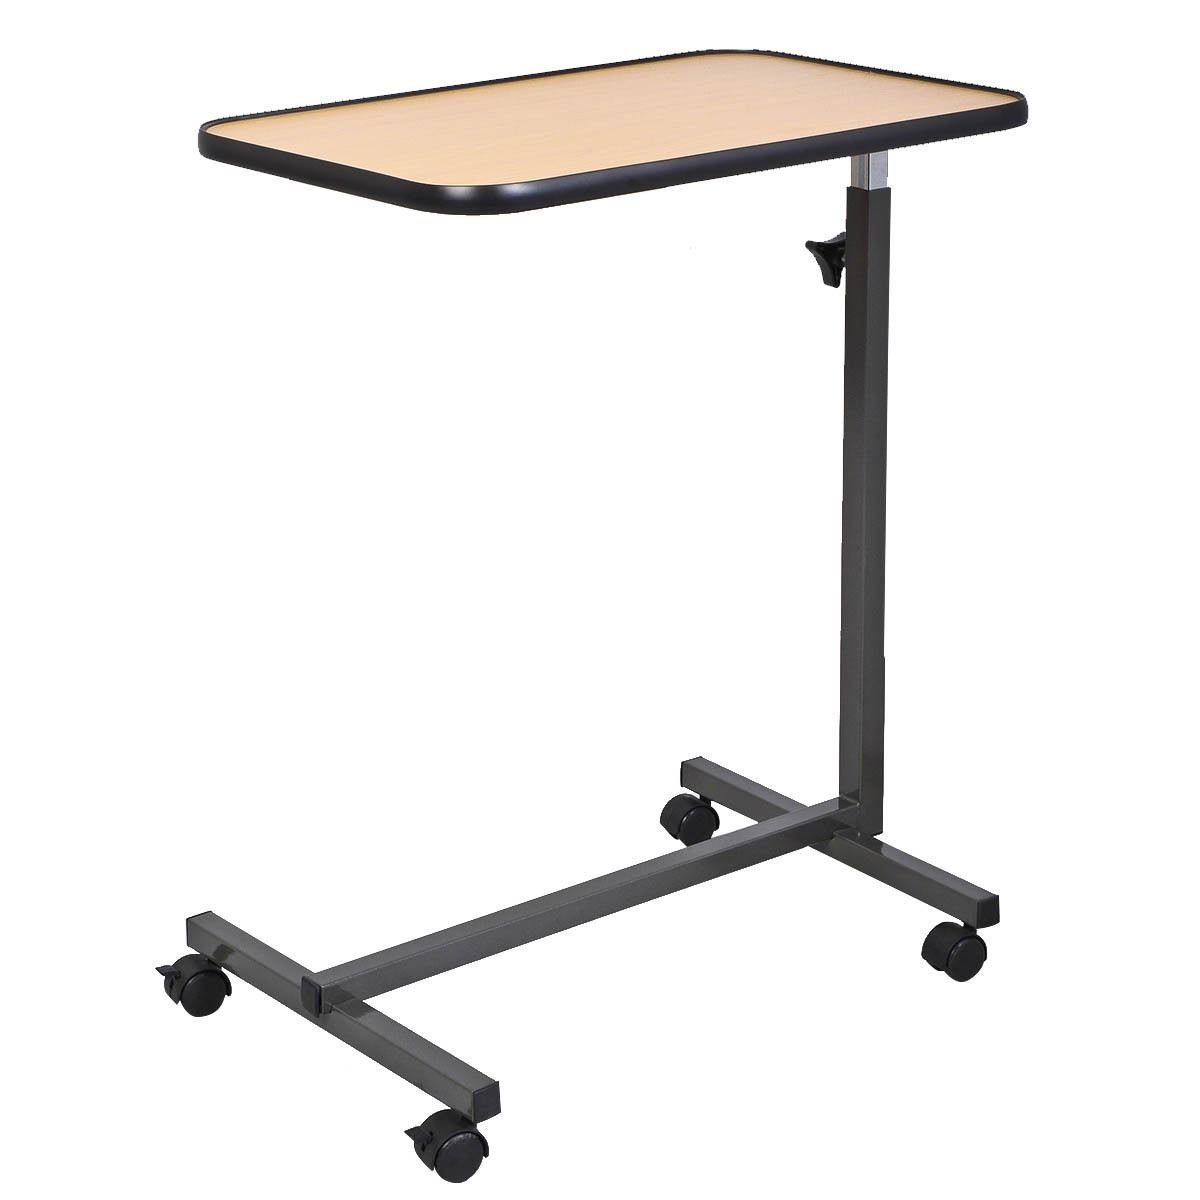 Merveilleux Amazon.com: Overbed Laptop Food Tray Table Rolling Desk Hospital Over Bed  With Tilting Top: Kitchen U0026 Dining